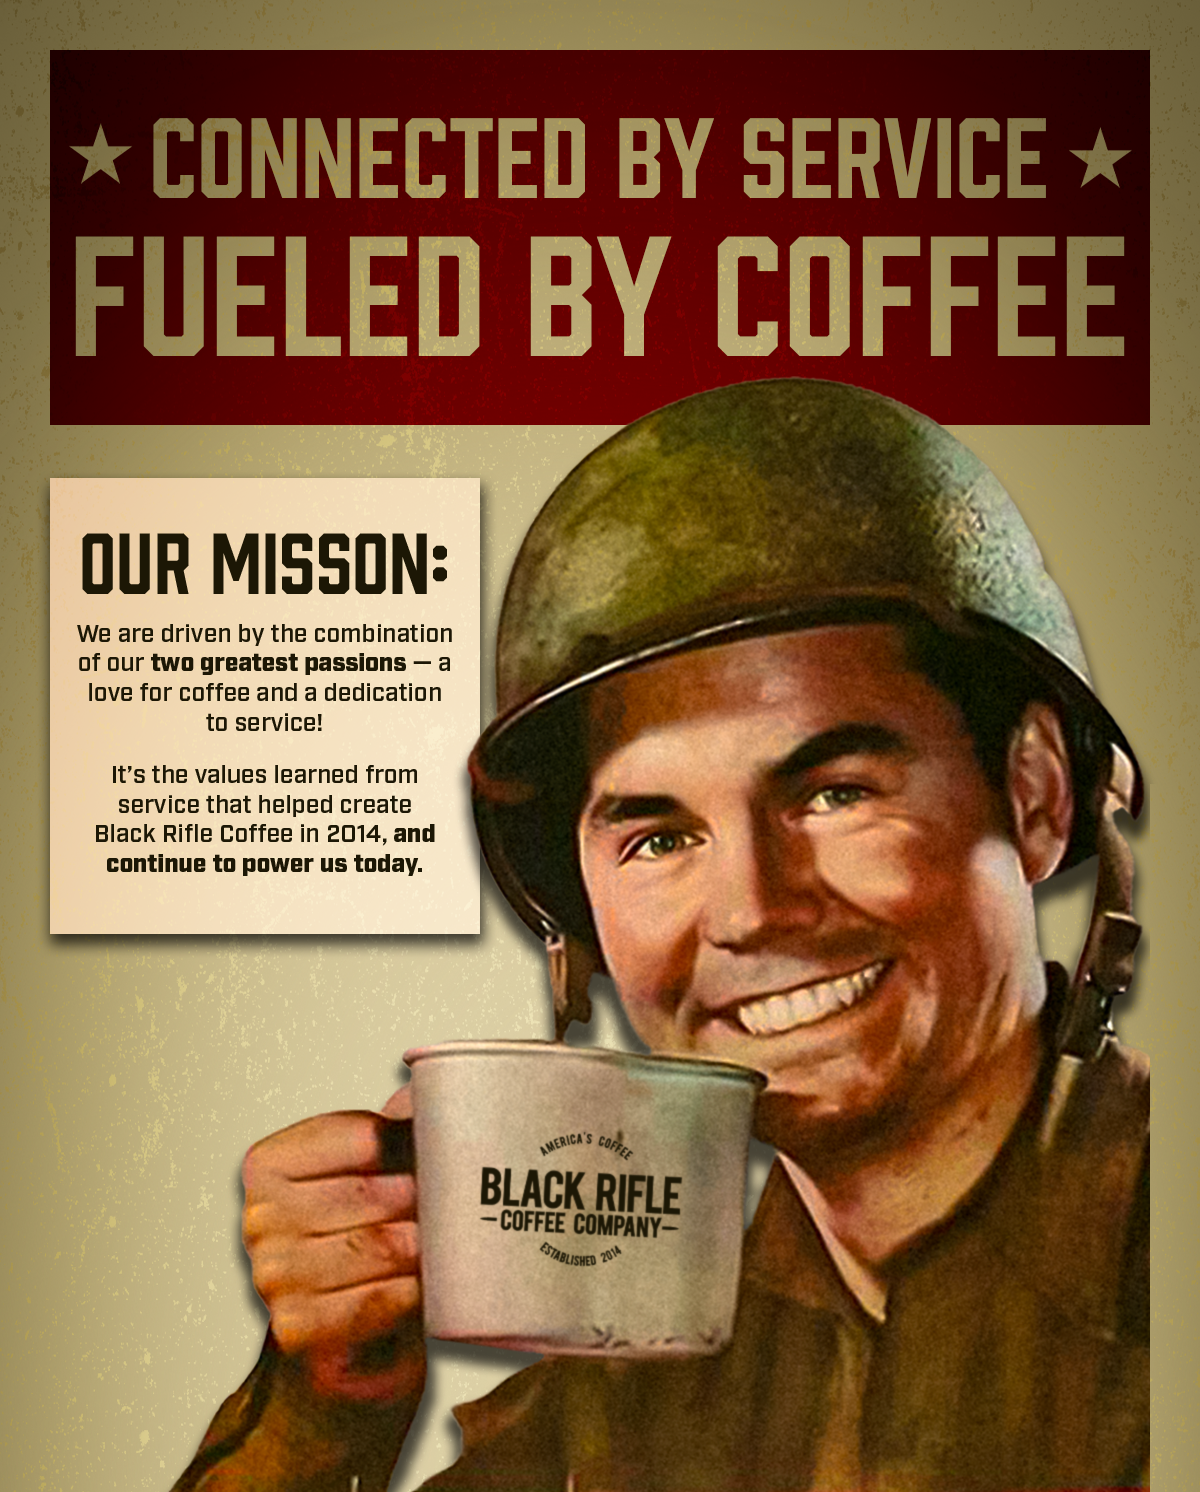 Connected by Service, Fueled by Coffee